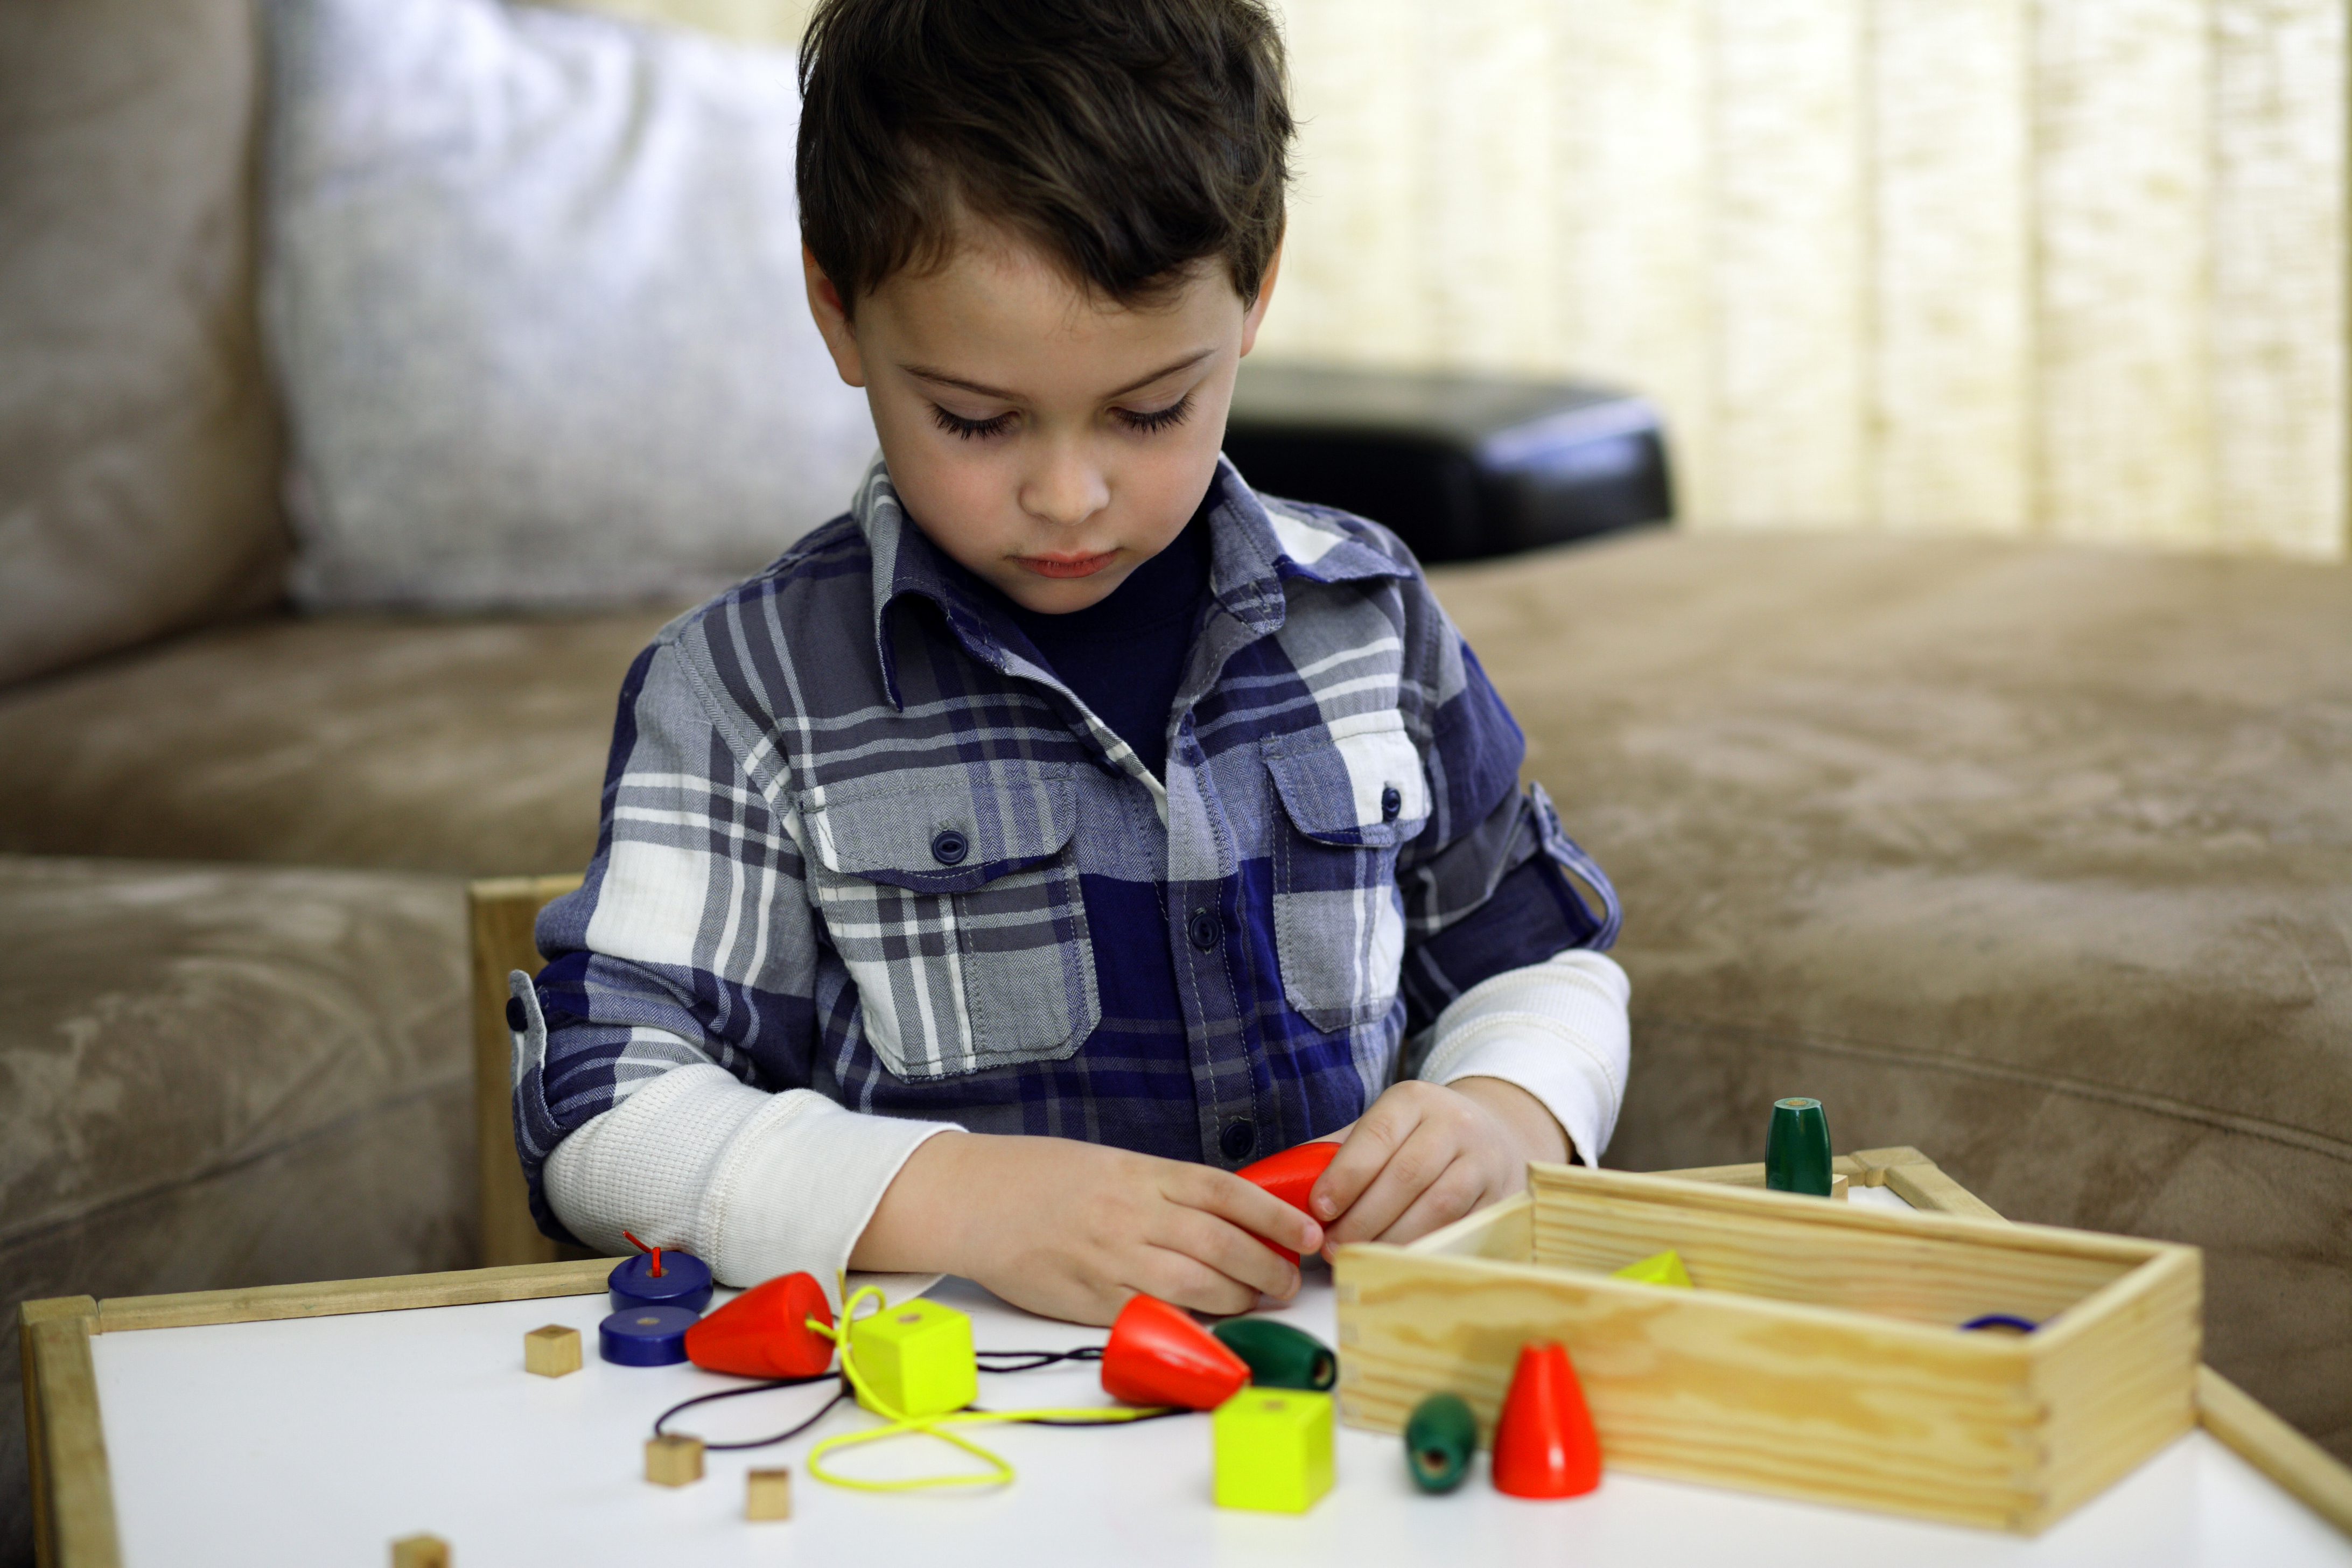 Young boy with autism selecting the right combination of beads to string together. Large beads allow the boy to better manipulate the objects to develop fine motor skills.